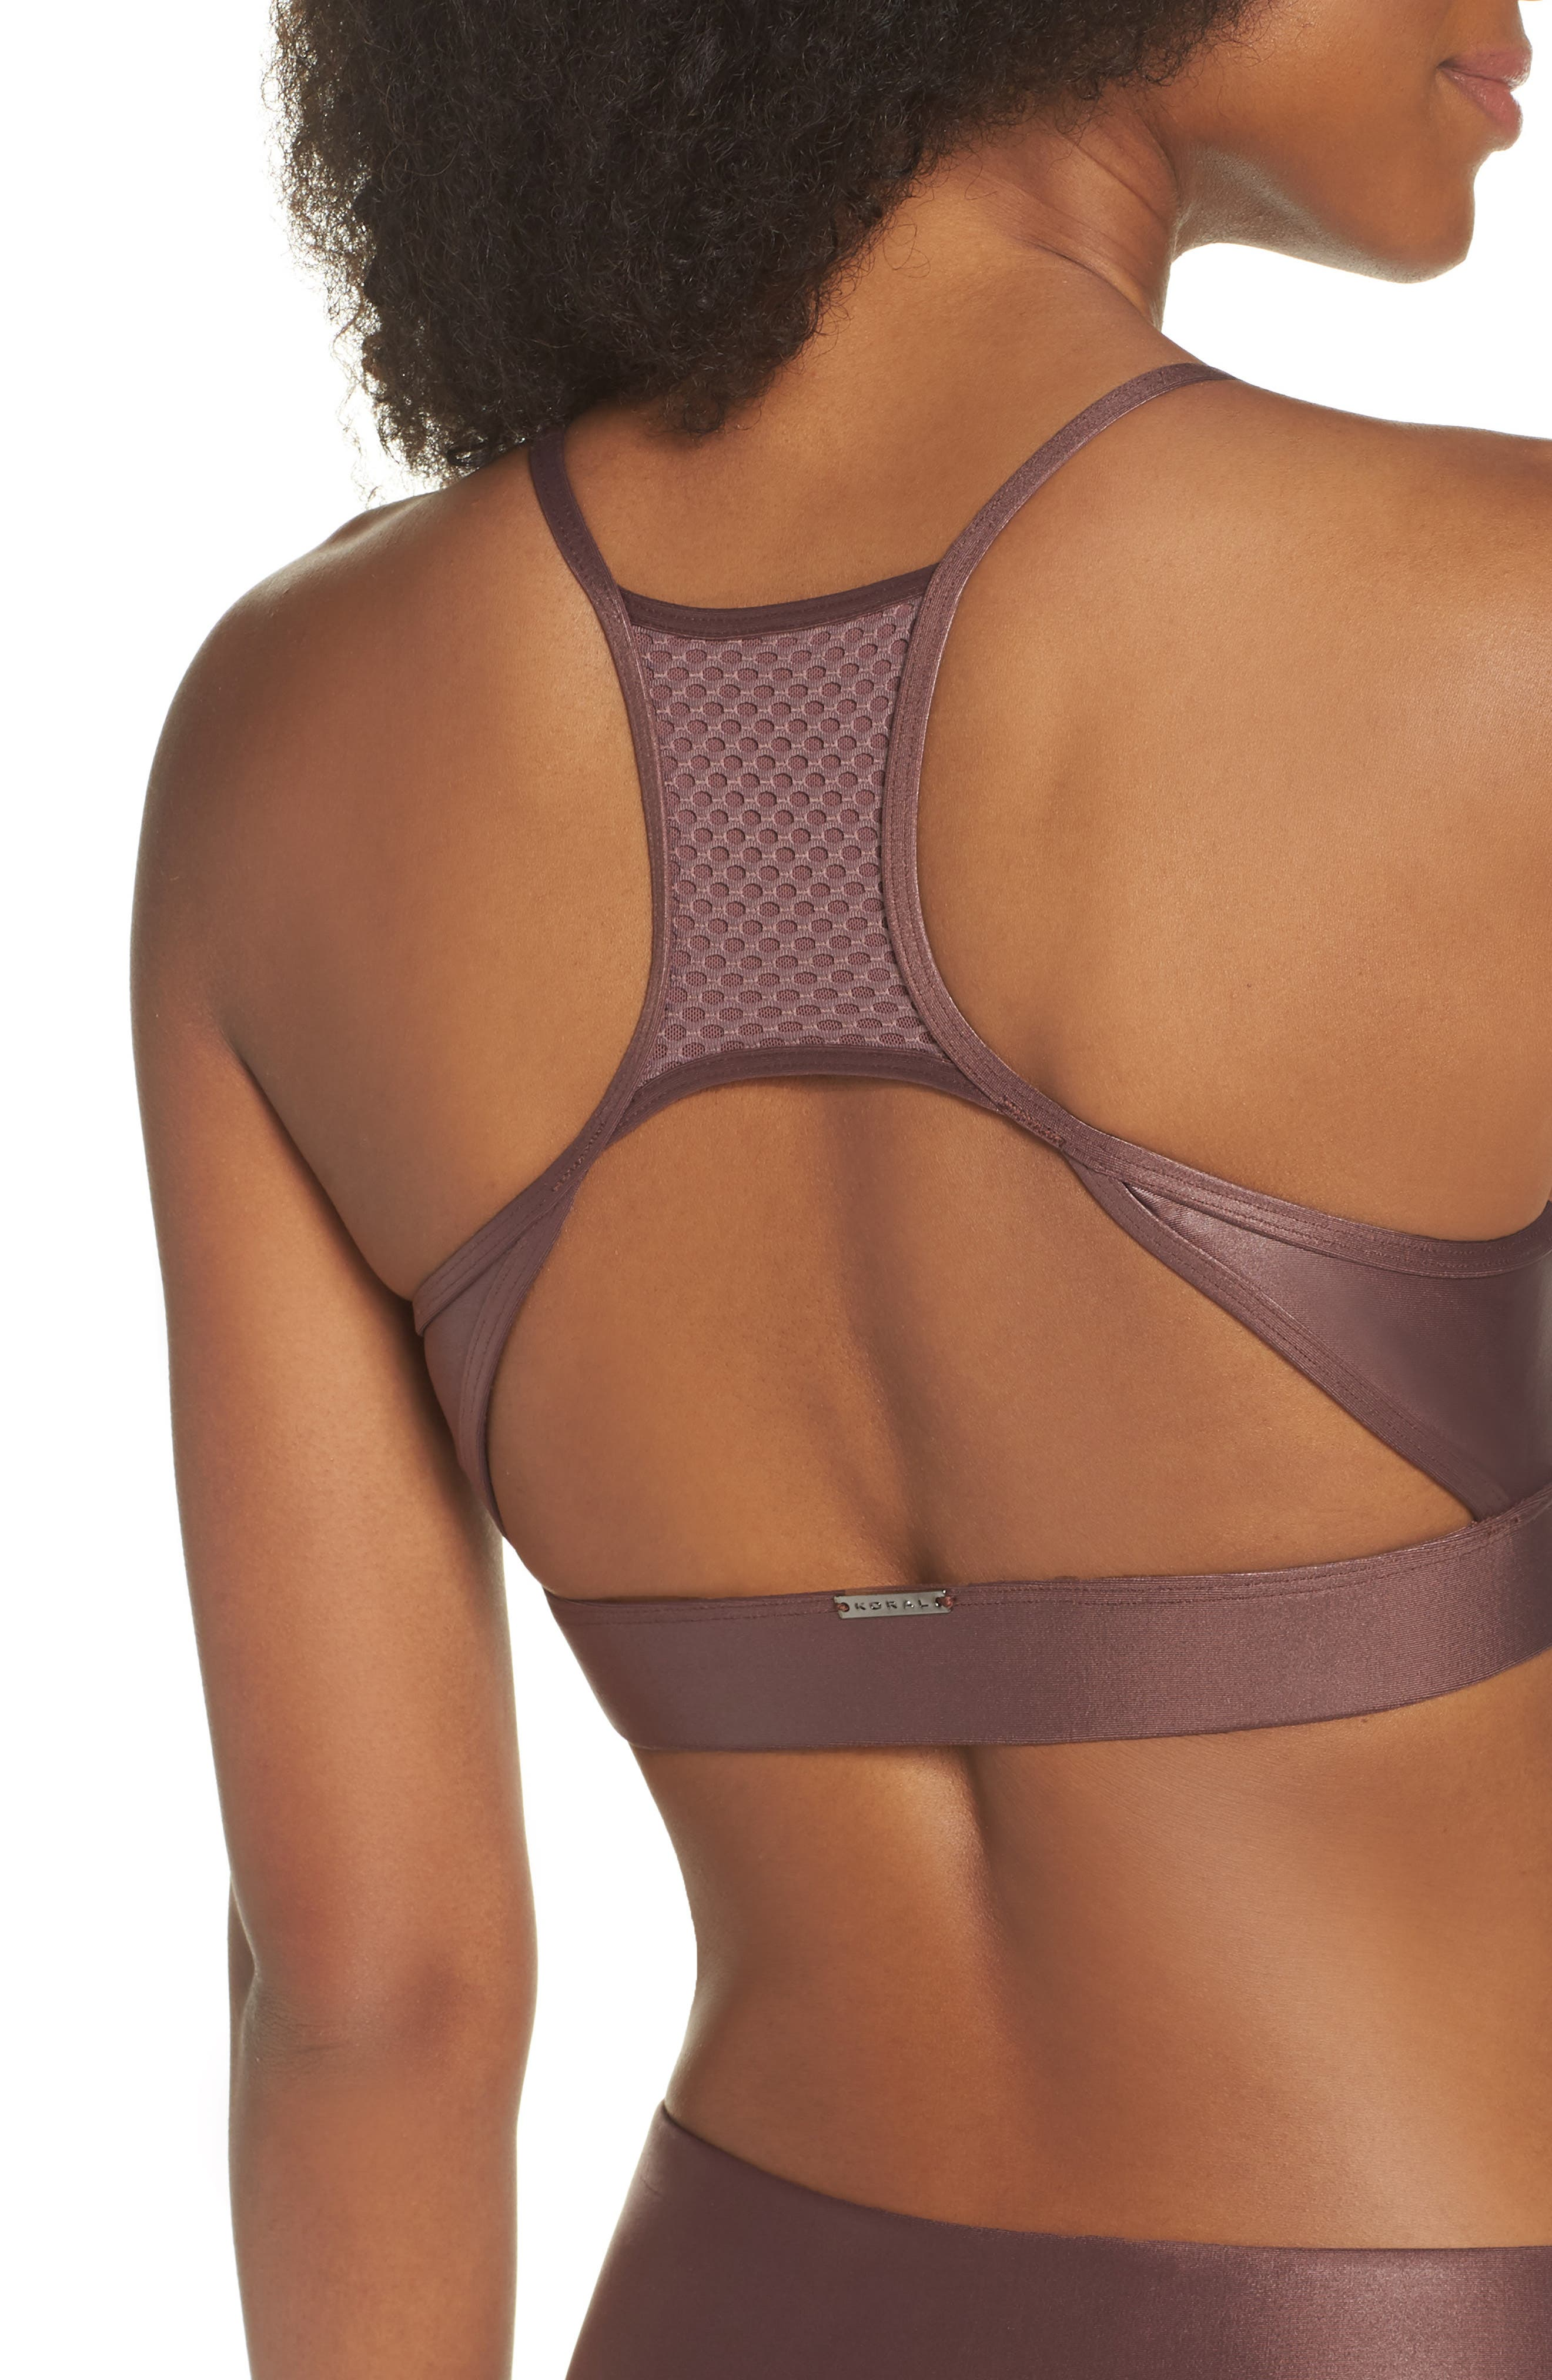 Pacifica Bra,                             Alternate thumbnail 4, color,                             530